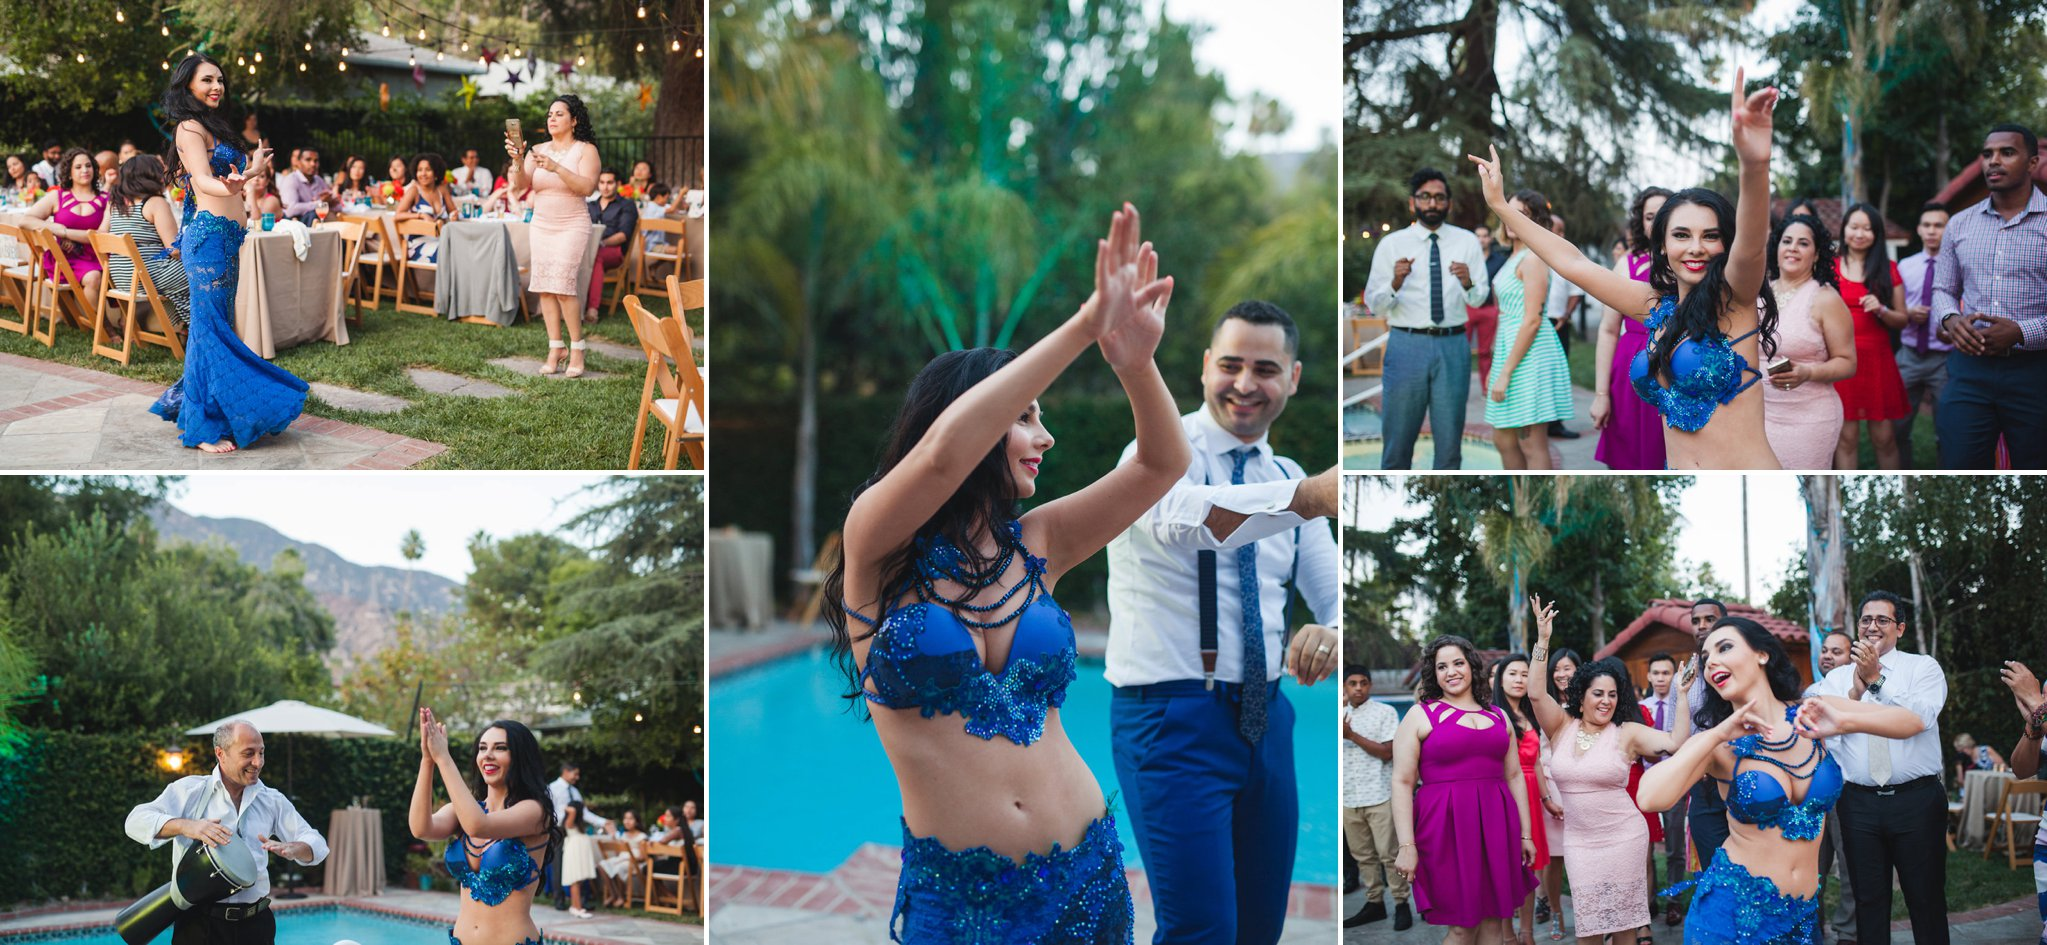 Feminist Wedding Photography Carly Romeo Photography Richmond VA Destination Altadena California Belly Dance Egyptian Dominican Drums Dancing